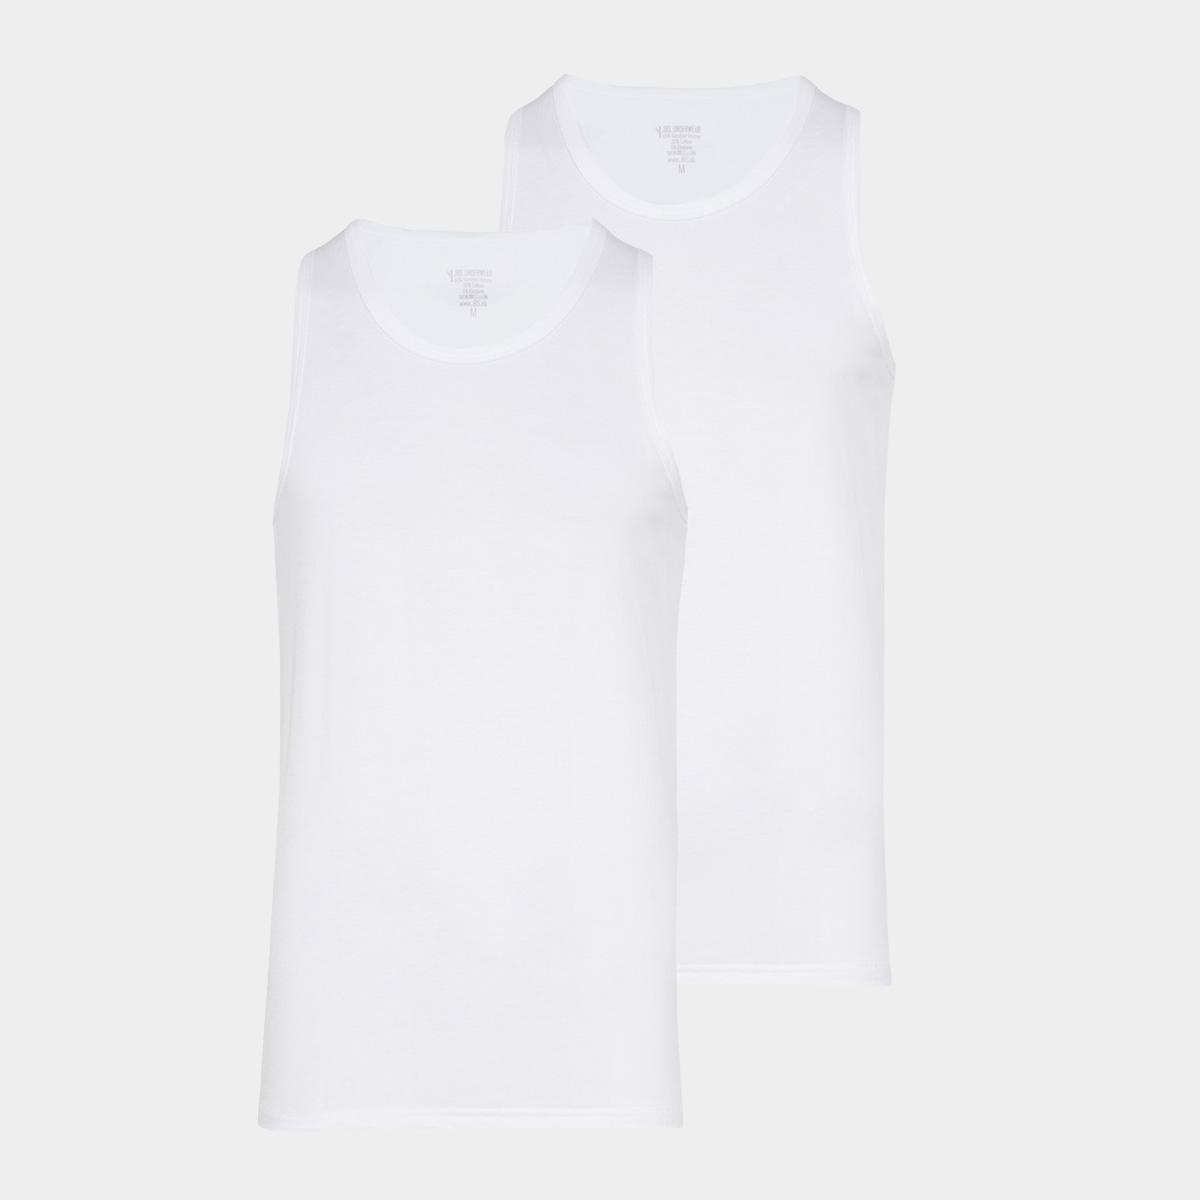 Image of   2 hvide bambus tank top